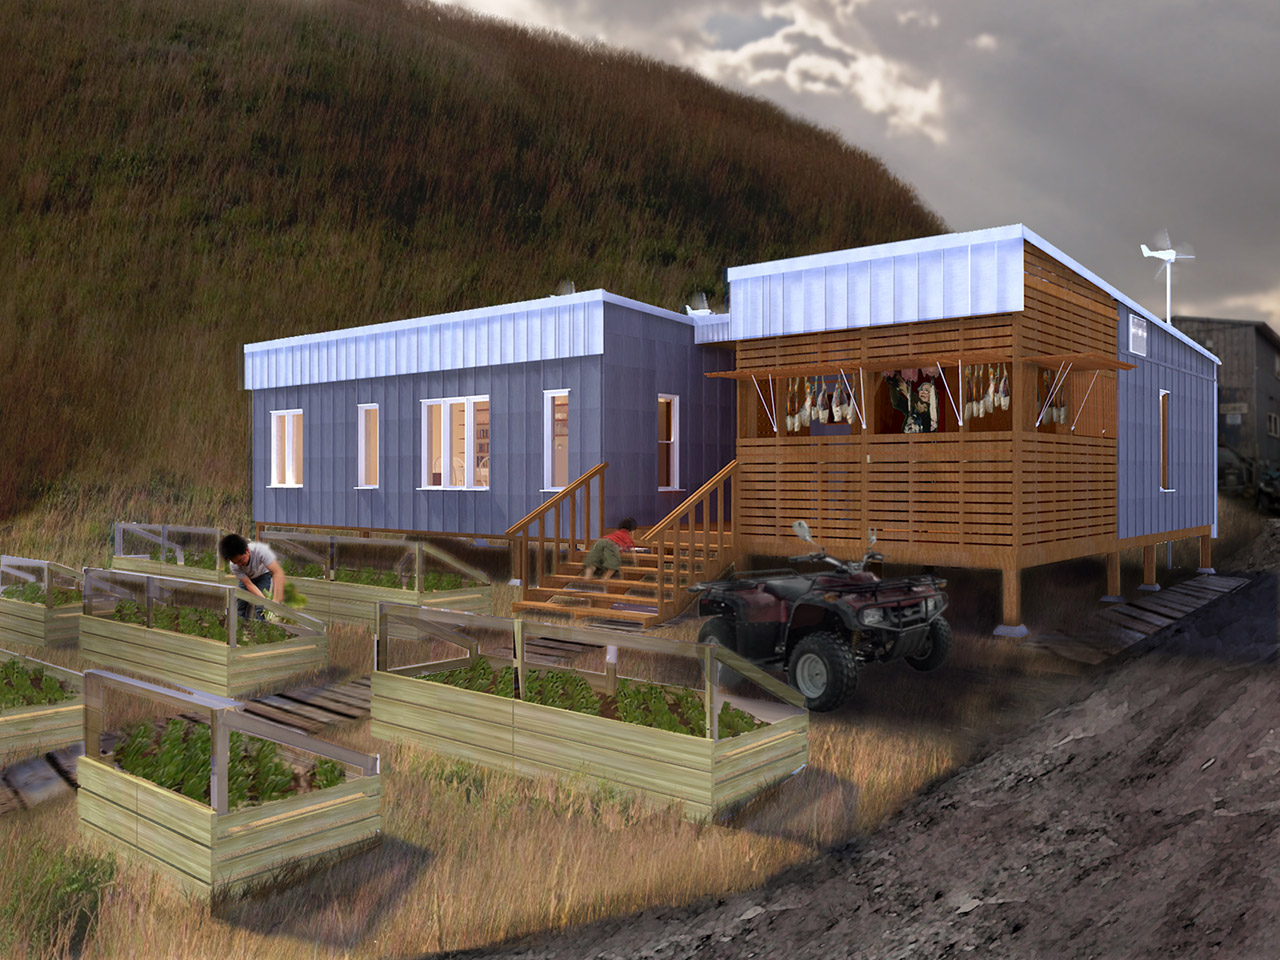 Belknap and Swain - House for a Windy Island, second place in the Living Aleutian Home Design Competition 2012